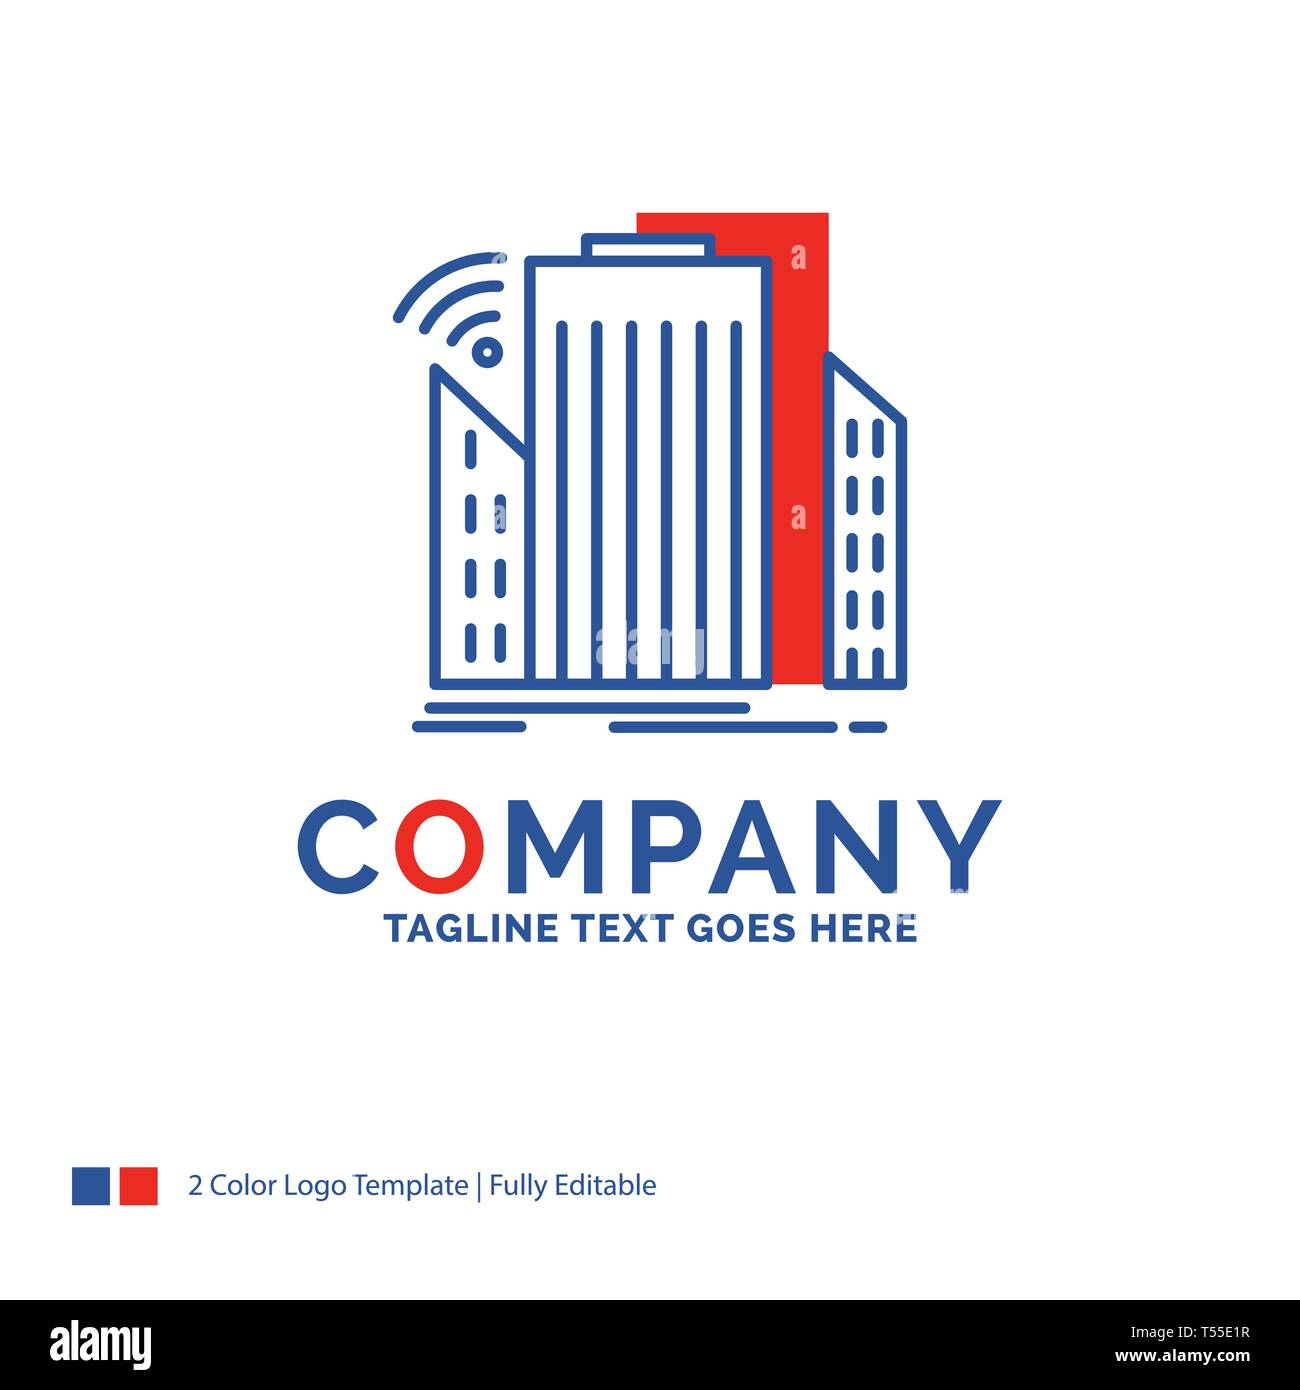 Company Name Logo Design For Buildings, city, sensor, smart, urban. Blue and red Brand Name Design with place for Tagline. Abstract Creative Logo temp - Stock Vector